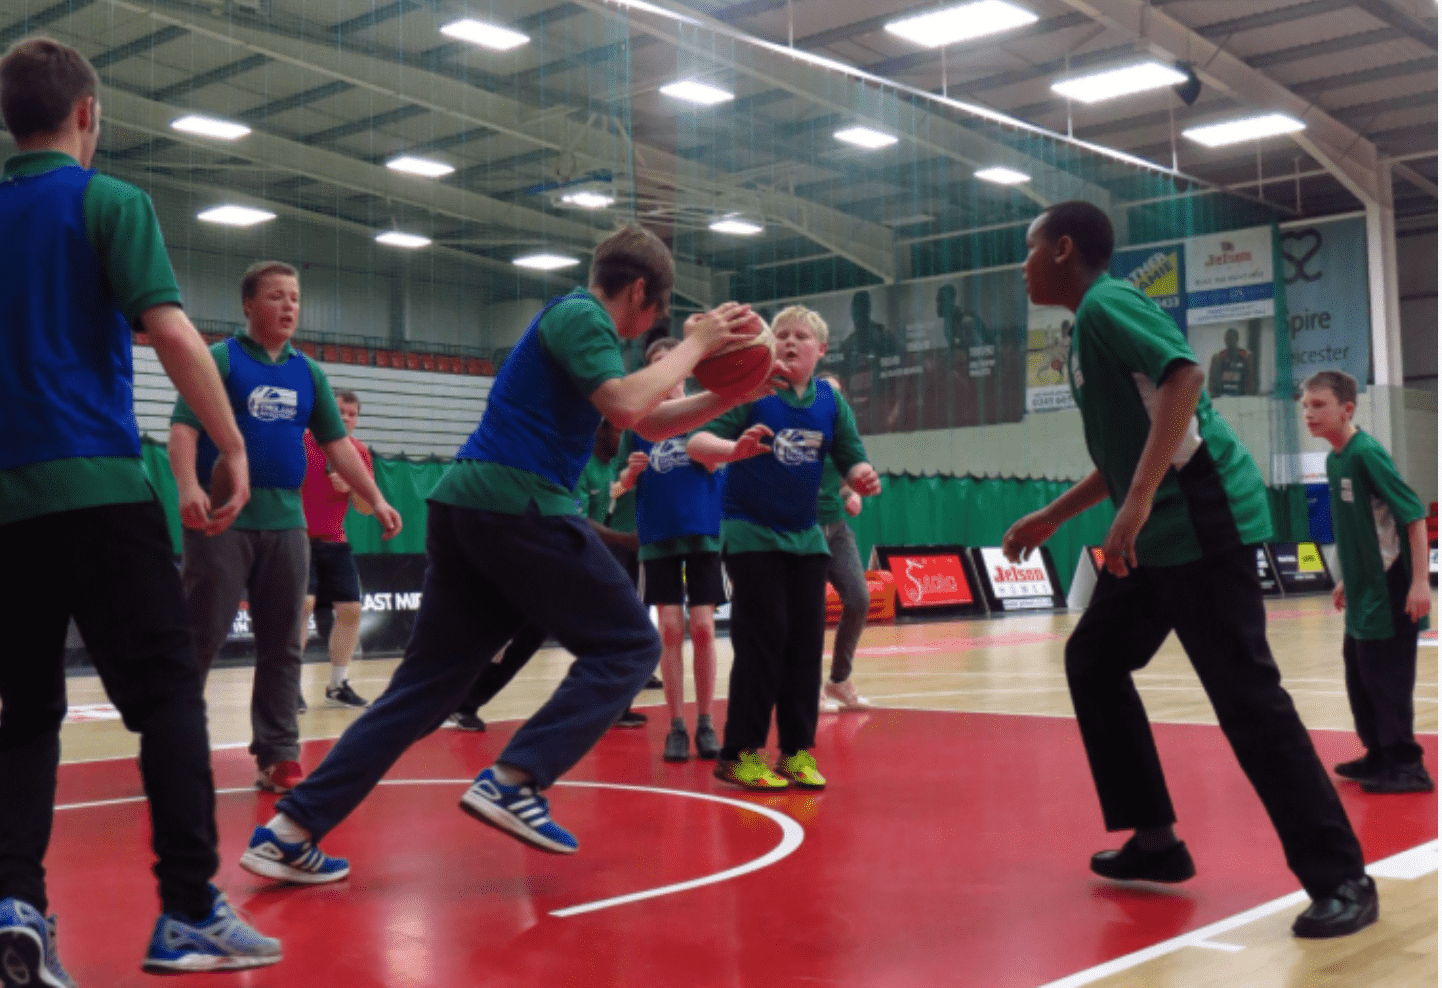 basketball session taking place